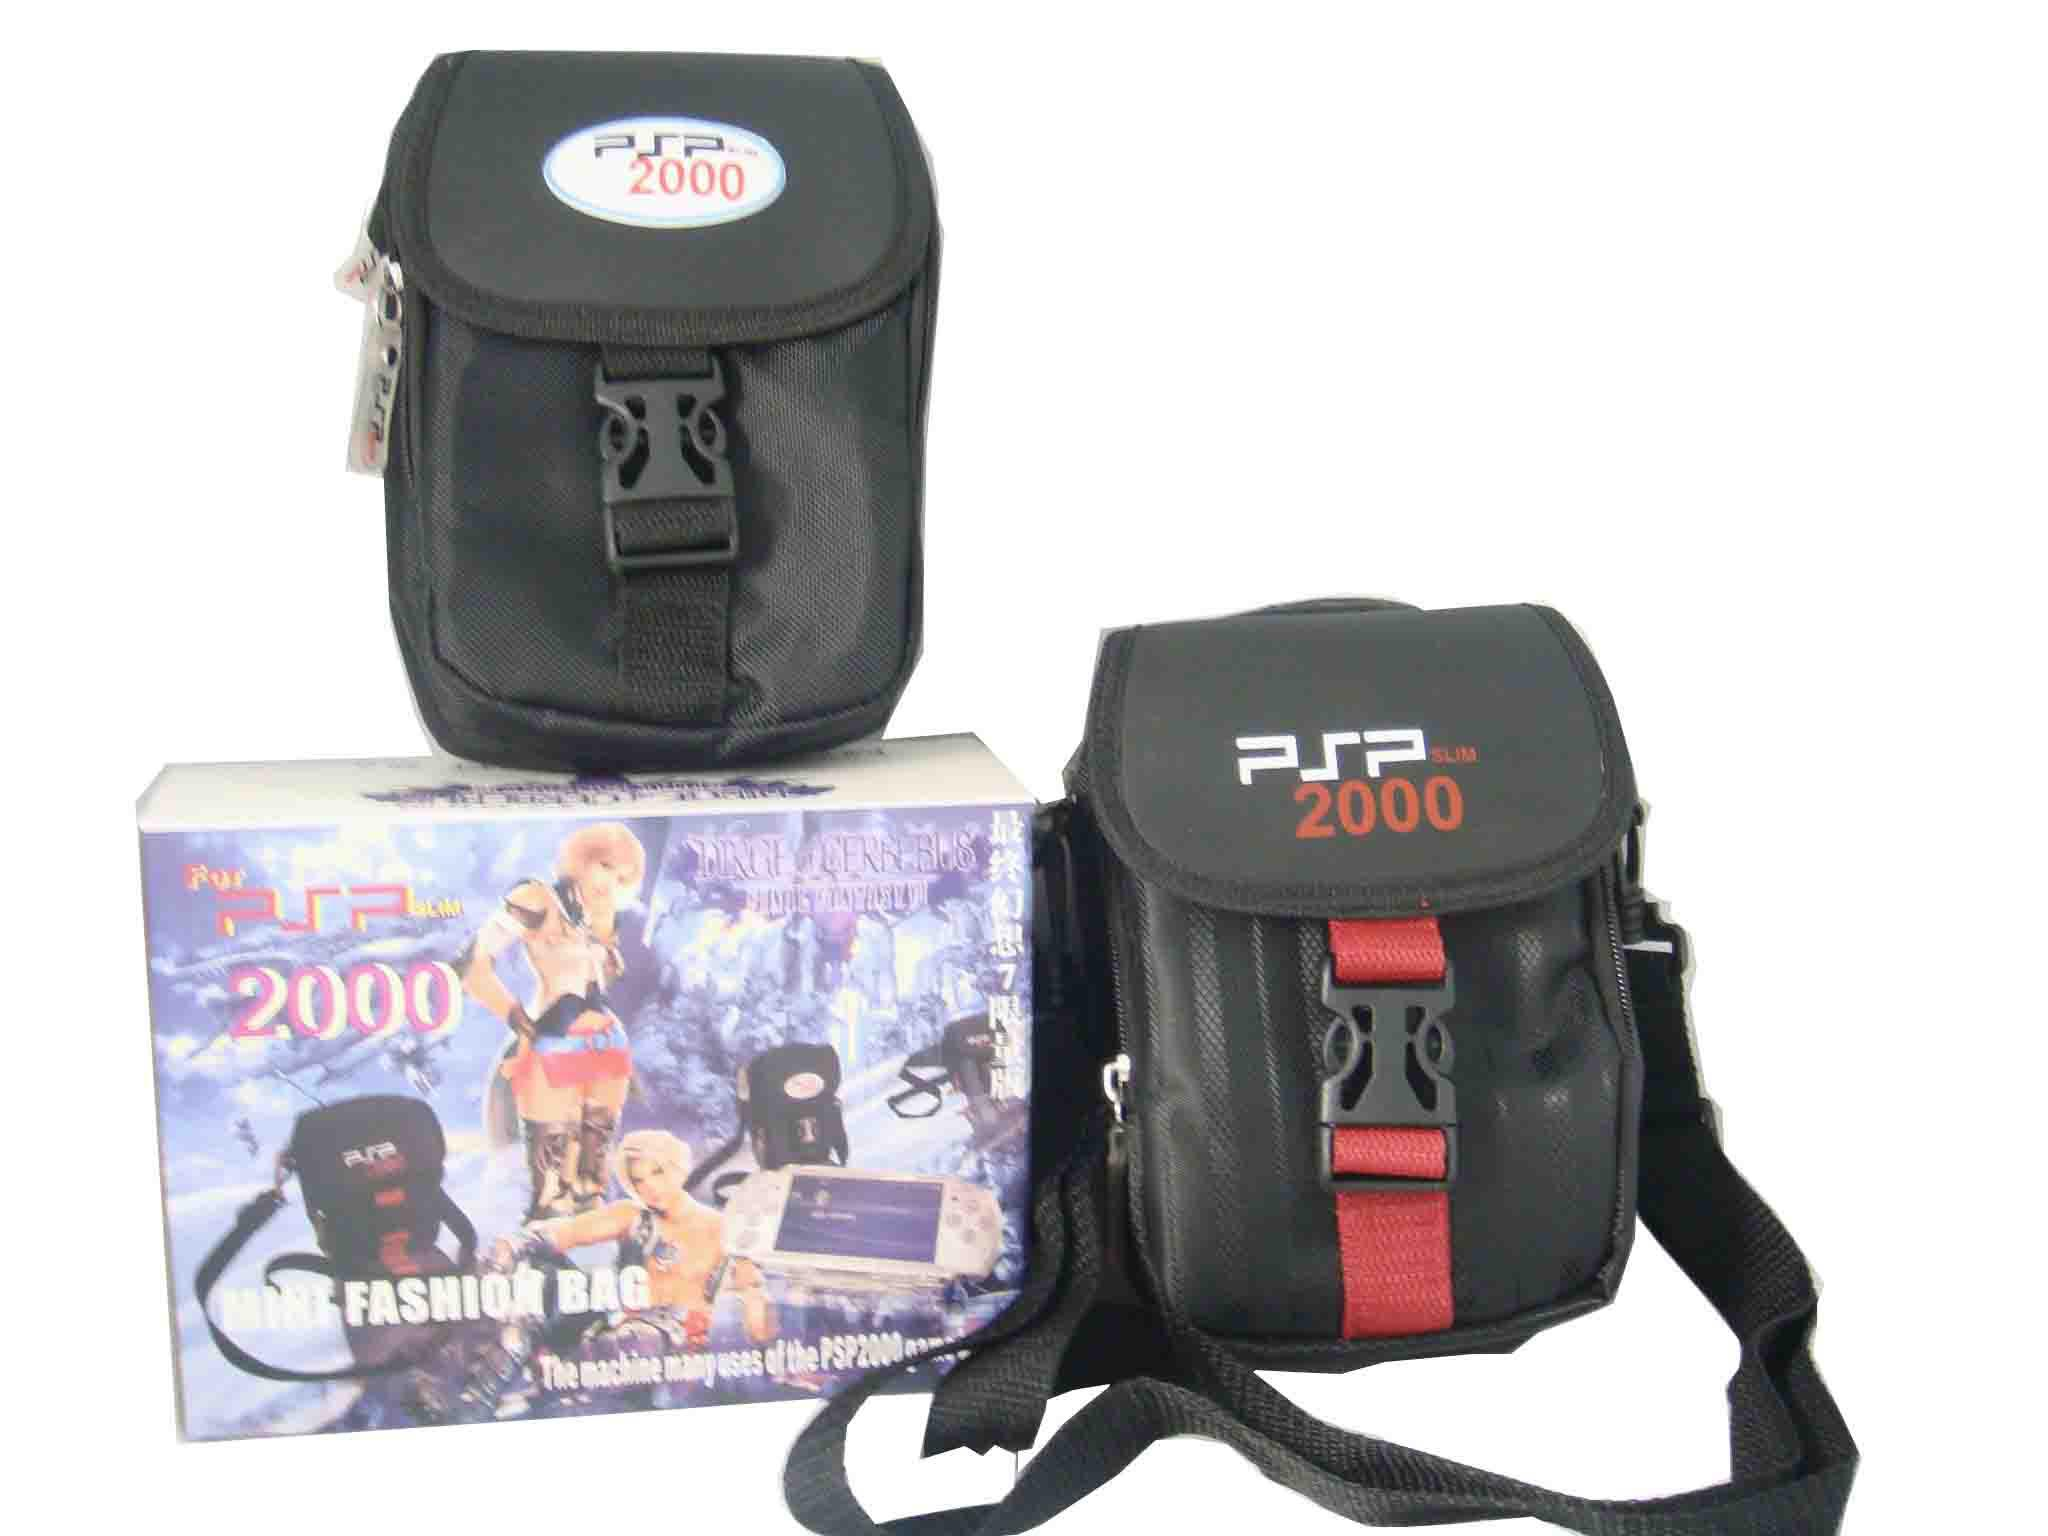 Multi-fuction bag with should strap for PSP2000